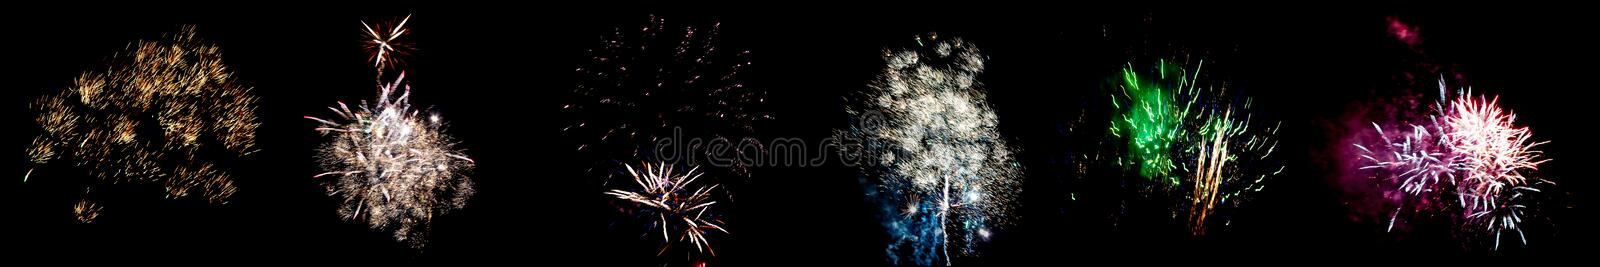 Set of multicolored flashes of fireworks isolated on black background.  stock images